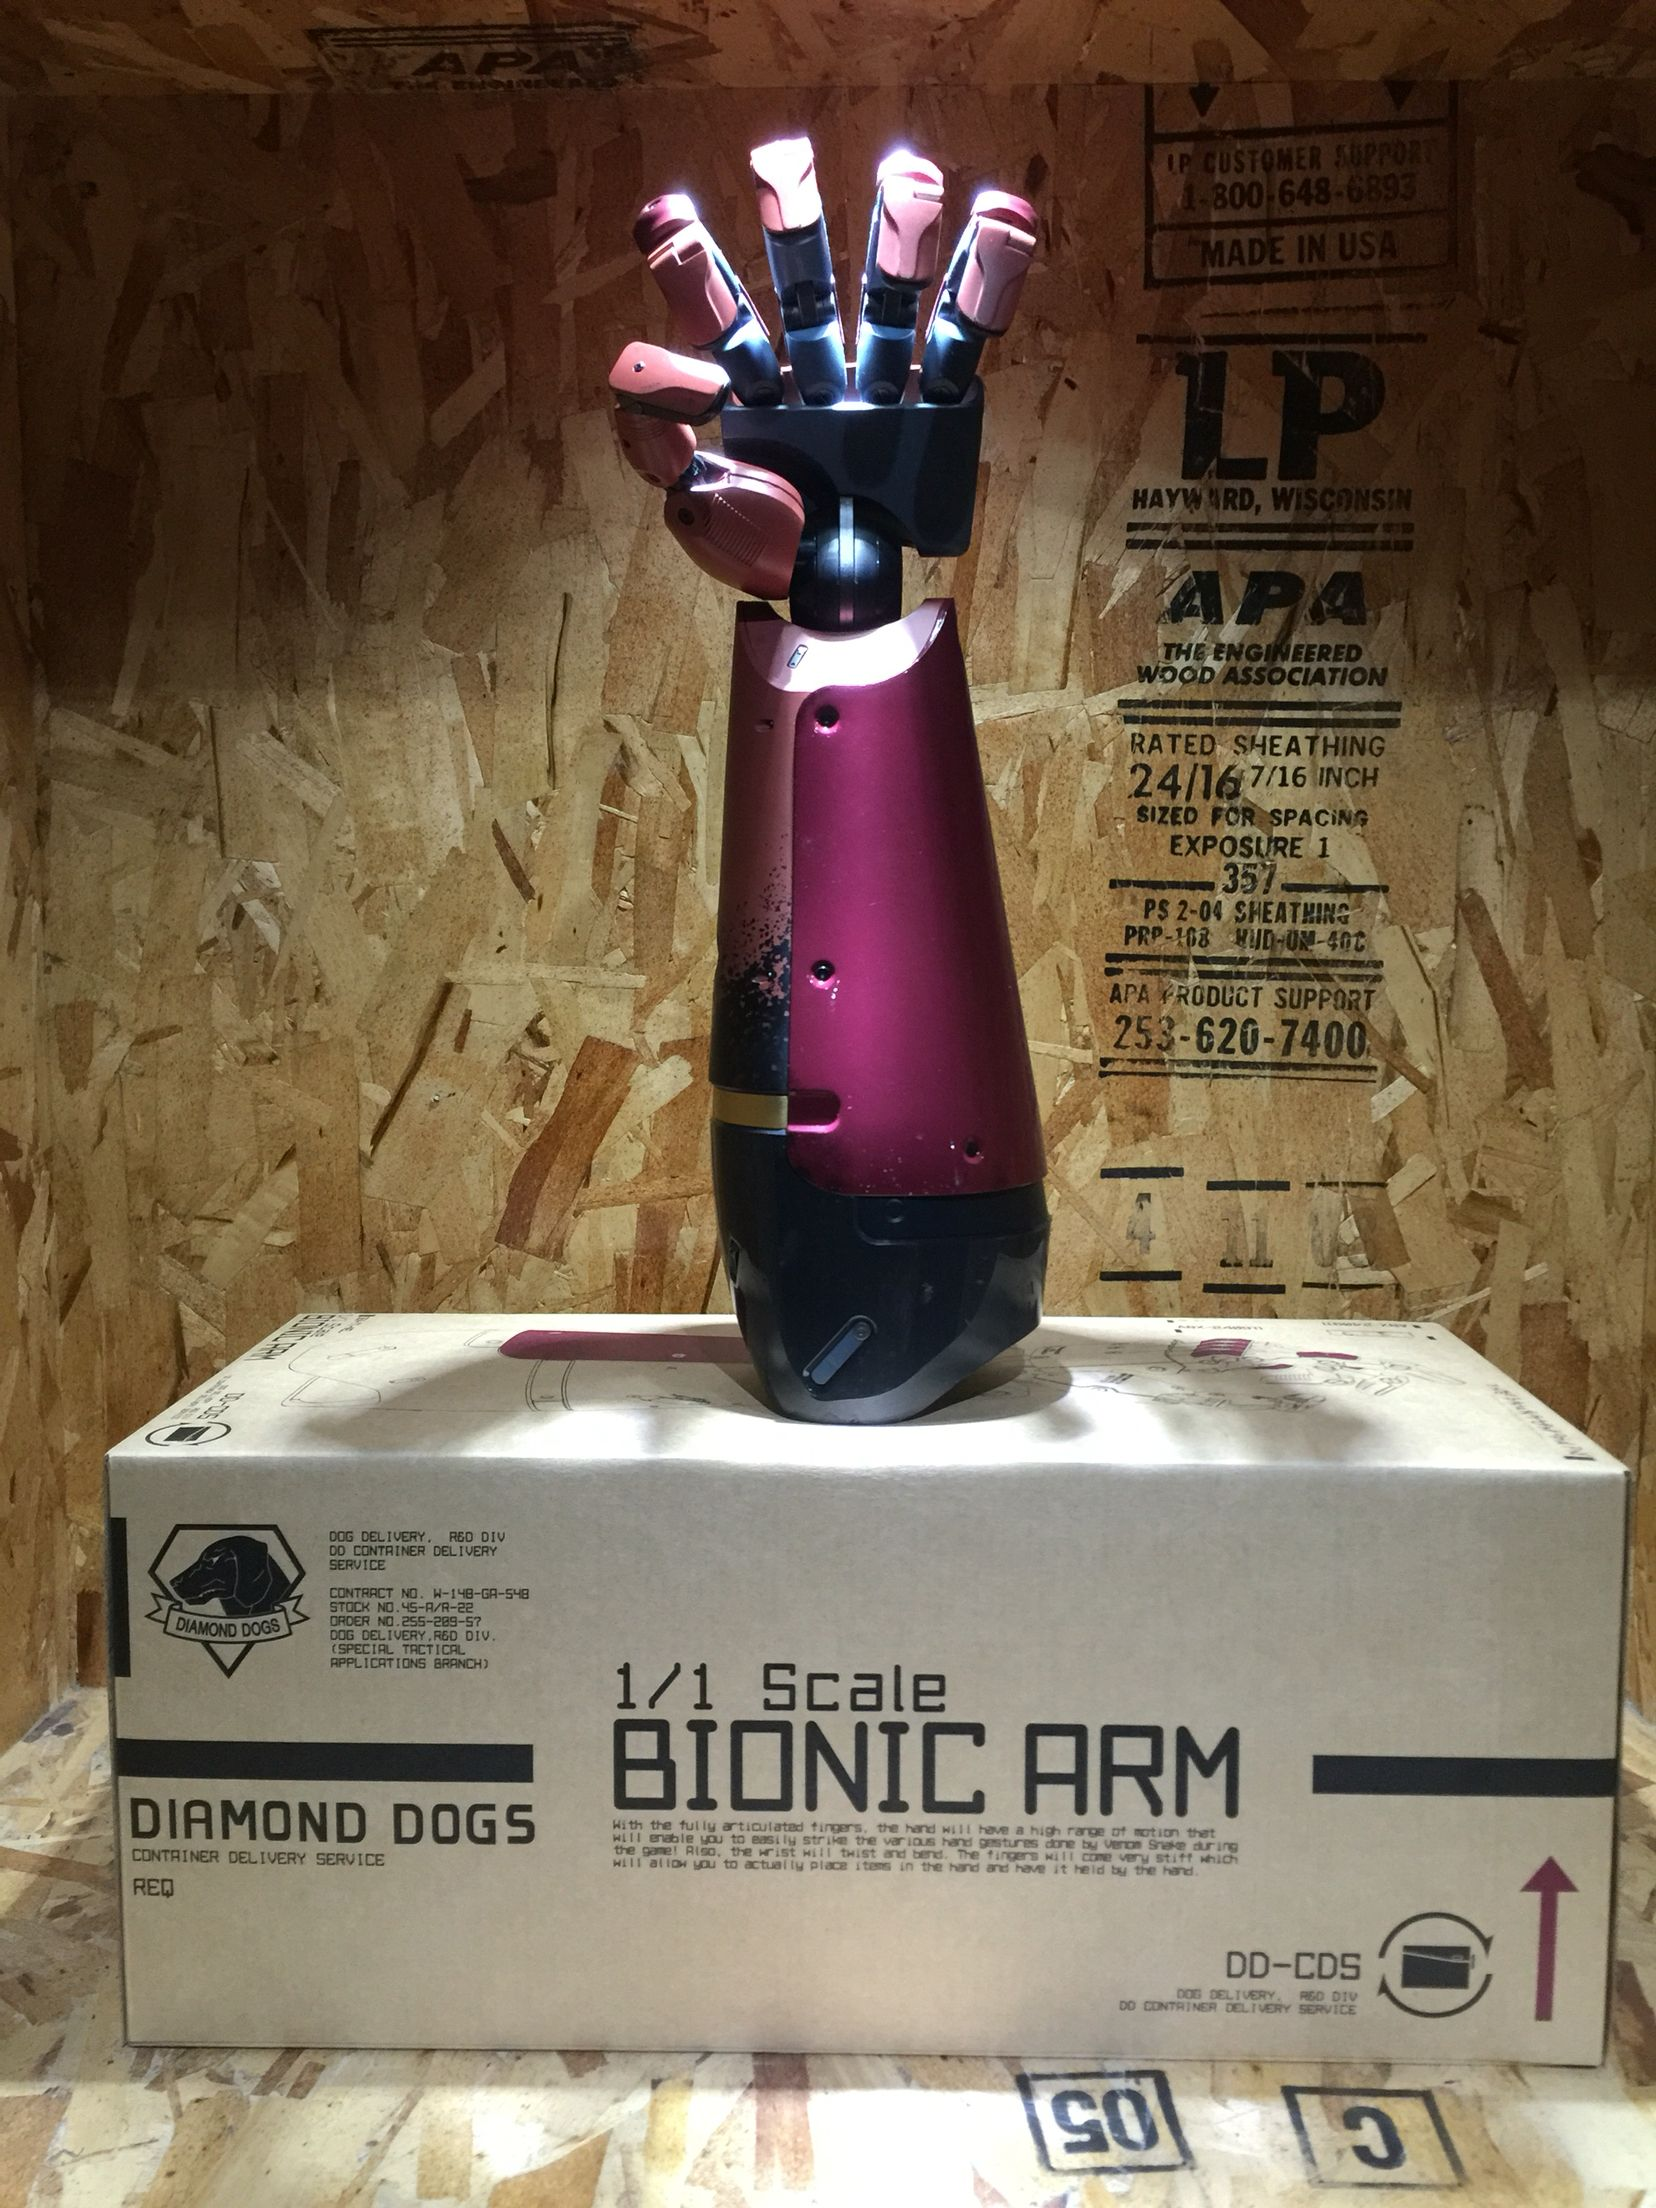 Metal Gear Solid V: 1/1 Scale Bionic Arm